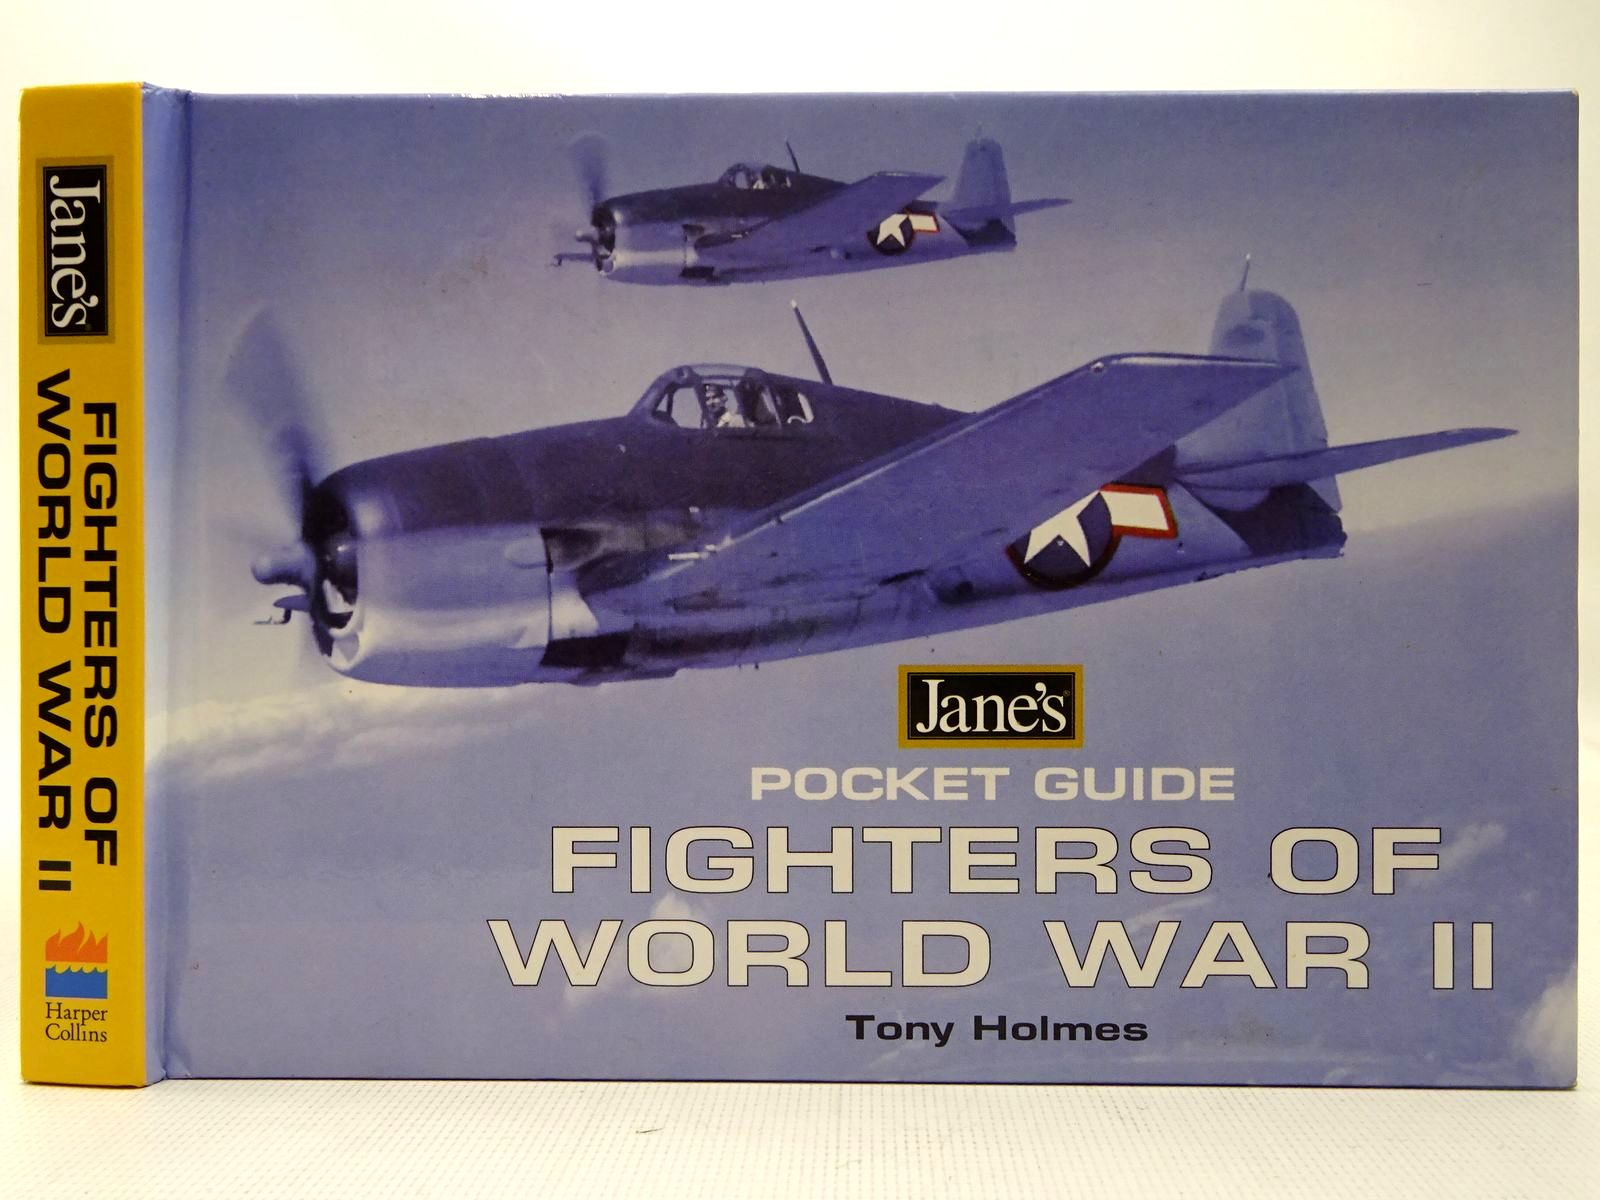 Photo of JANE'S POCKET GUIDE FIGHTERS OF WORLD WAR II written by Holmes, Tony published by Harper Collins (STOCK CODE: 2126850)  for sale by Stella & Rose's Books